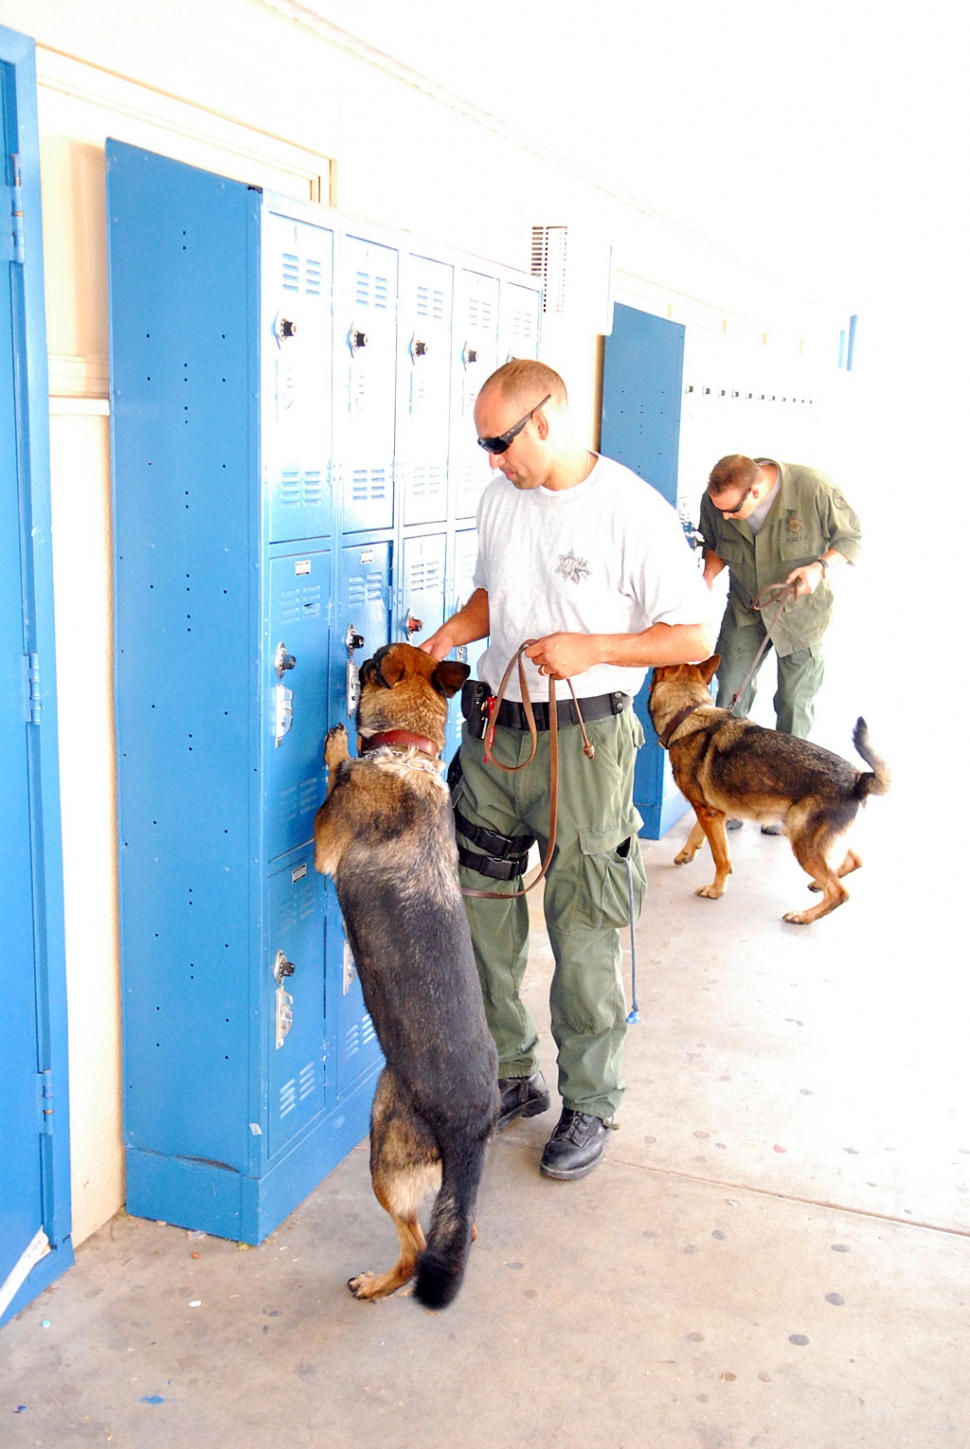 Fillmore High School received a surprise visit from the Ventura County Sheriff's Department's drug enforcement agency last Thursday. Numerous K-9 units from around the county participated in one of their regularly scheduled drug detection training events. The dogs are highly trained in discovering narcotics.